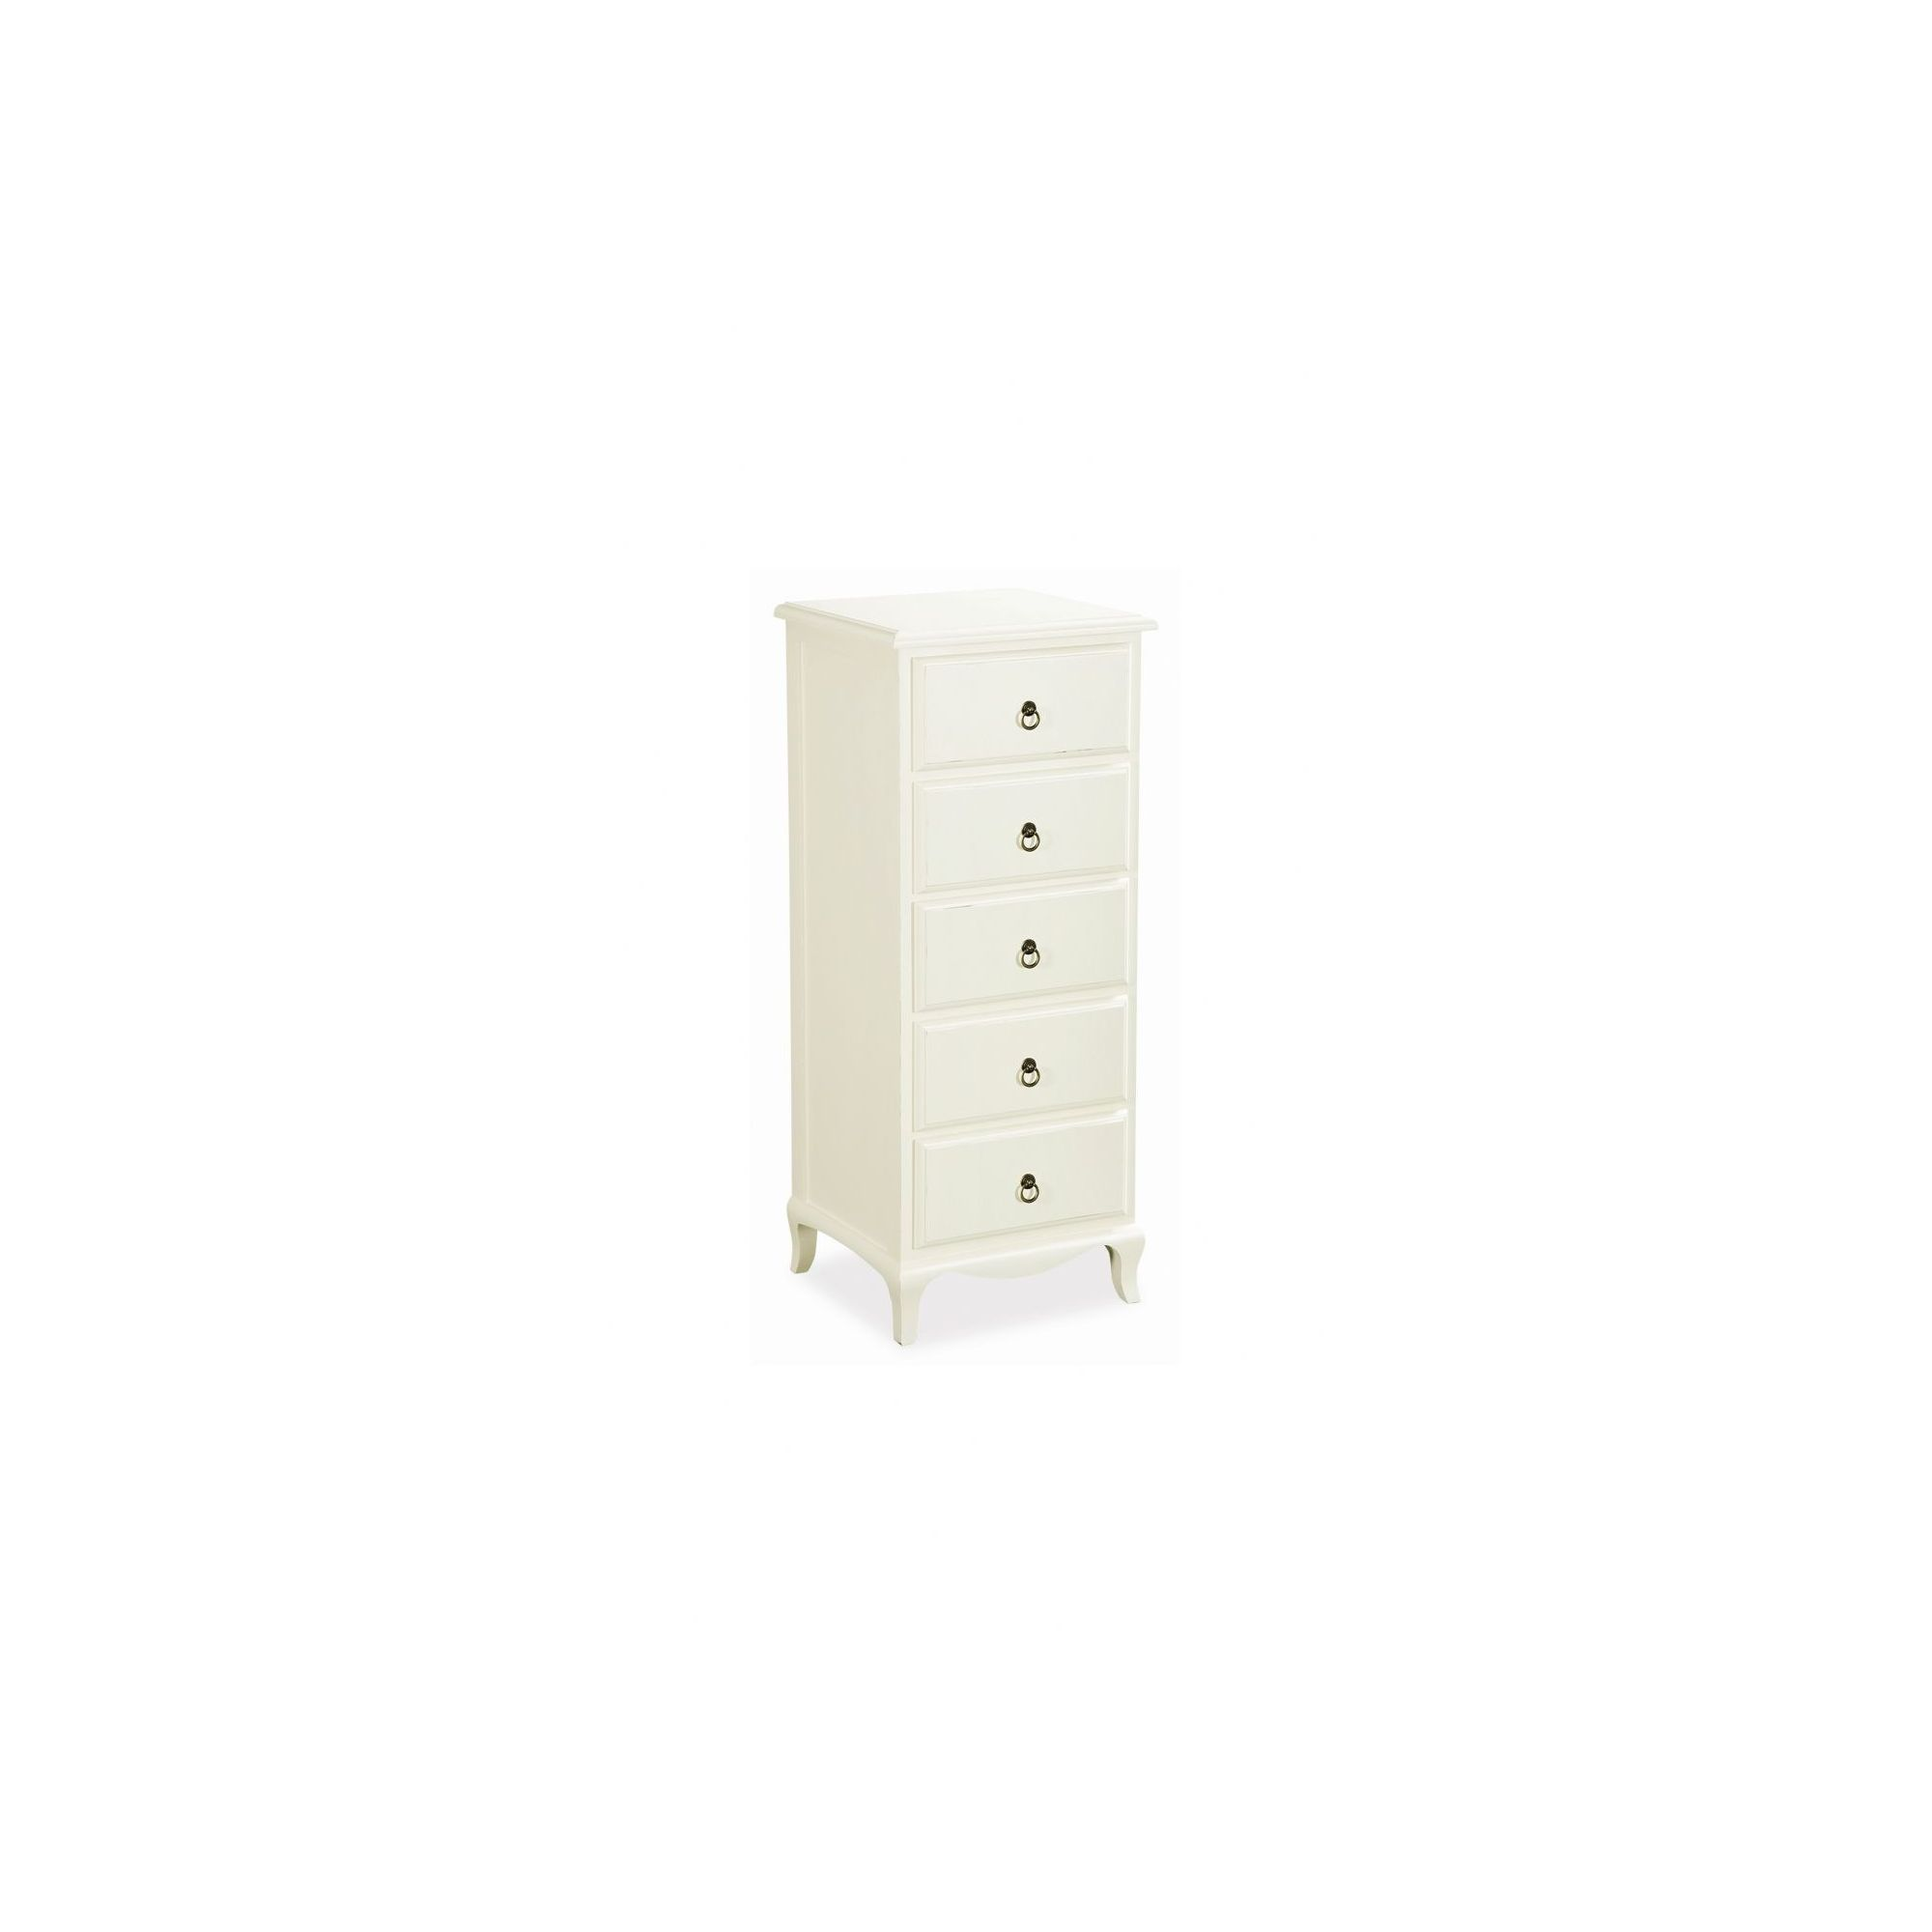 Alterton Furniture Normandy Tallboy Chest at Tesco Direct